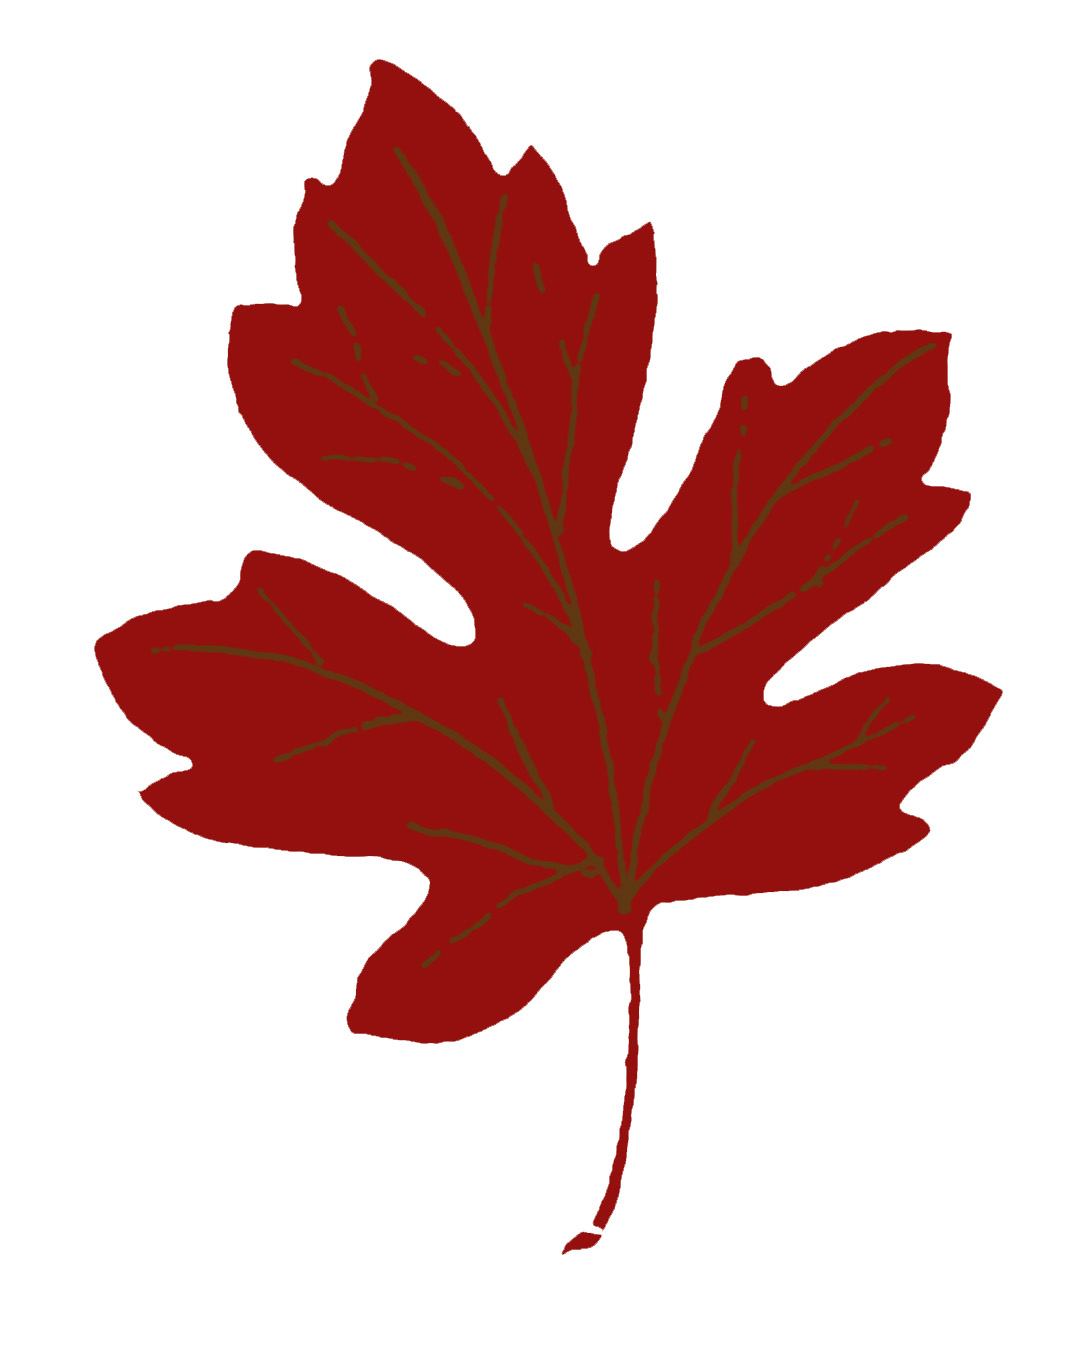 - 8 Maple Leaf Images! - The Graphics Fairy